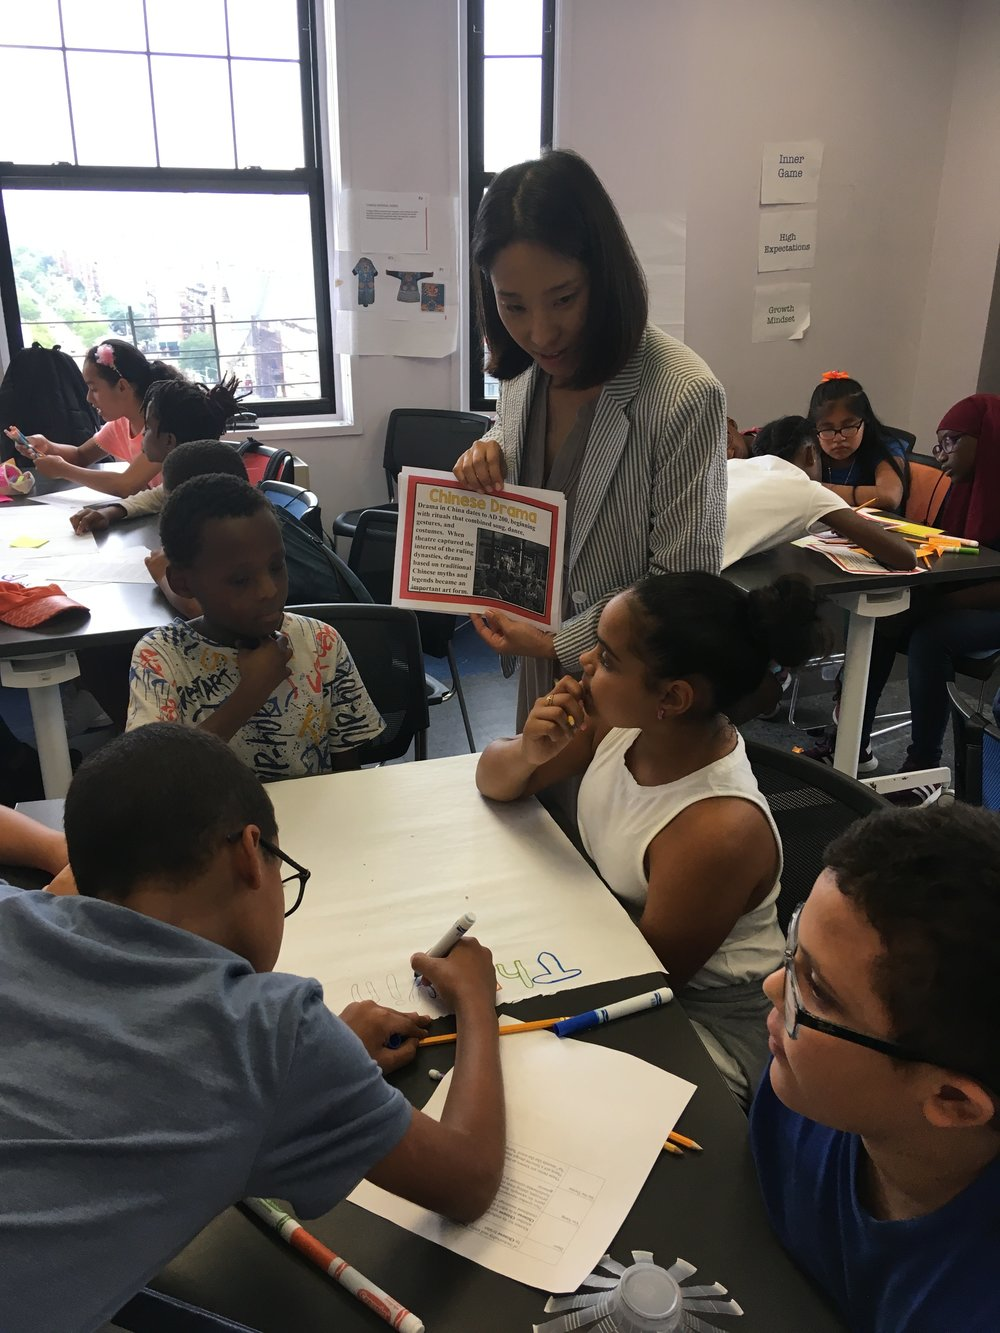 Middle school youth in Harlem engaged in a summer enrichment activity created by Voices Advance